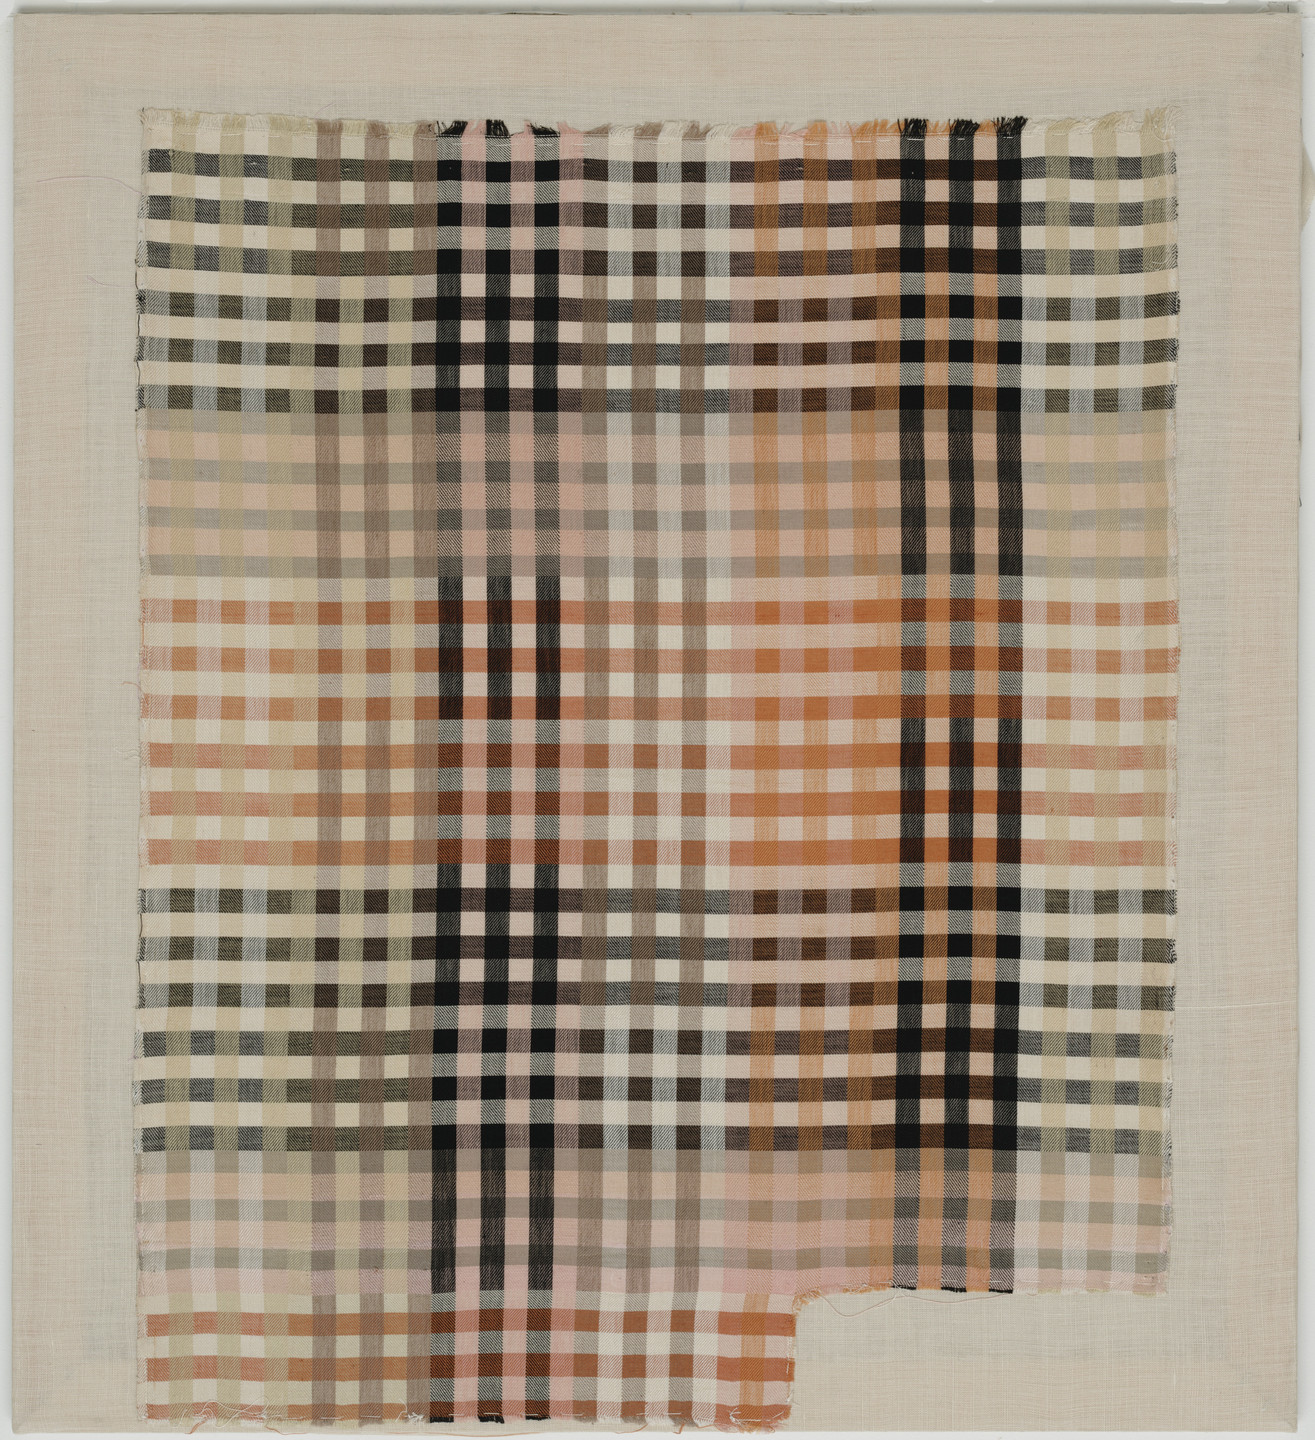 Anni Albers. Tablecloth Fabric Sample. 1930